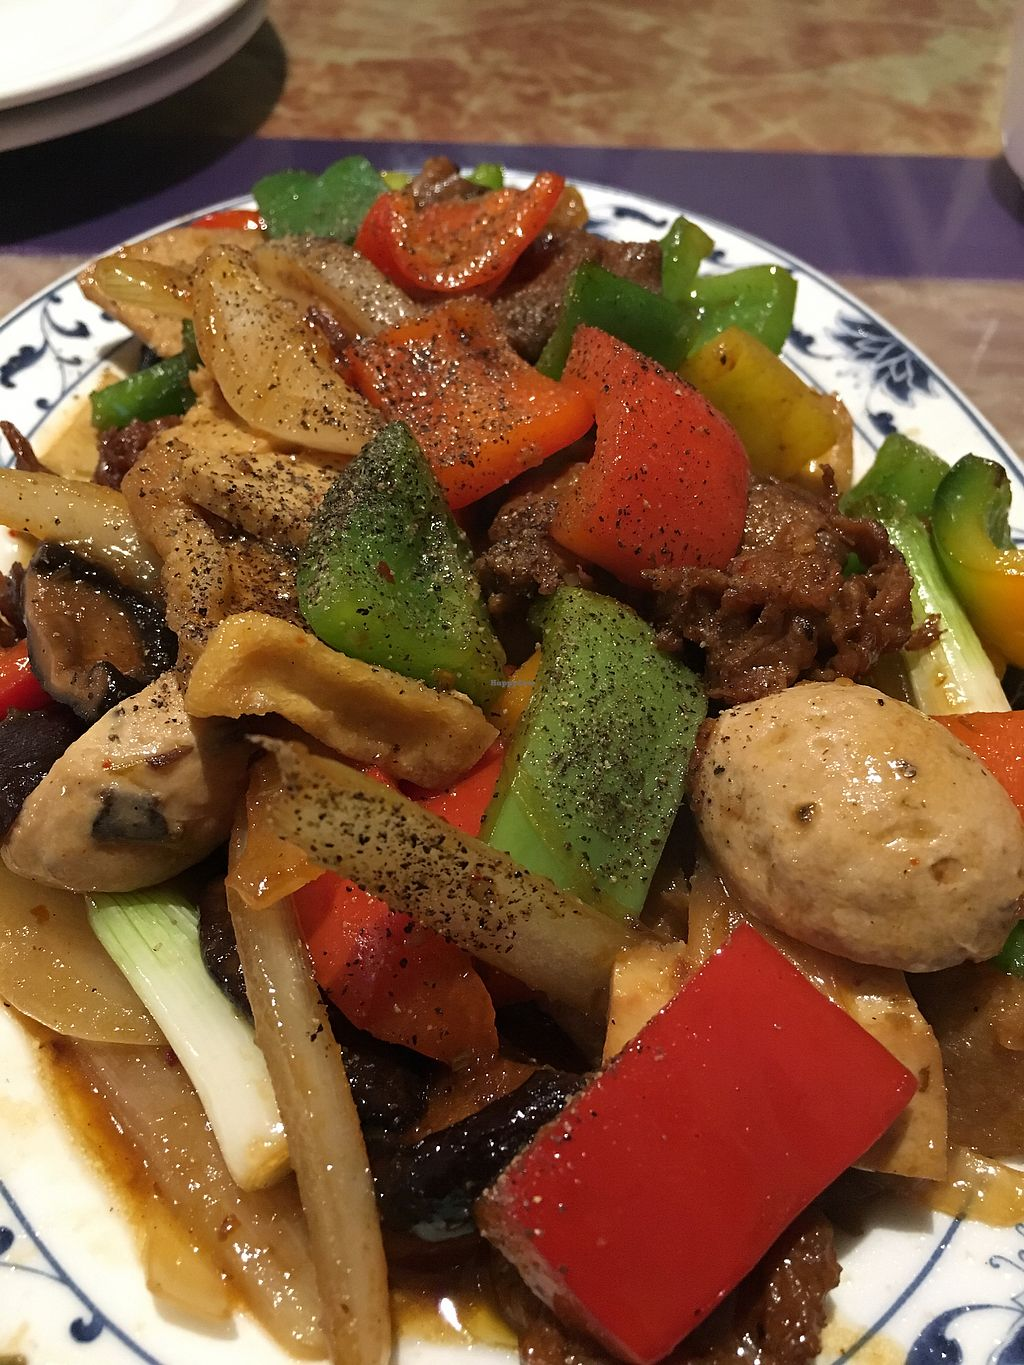 """Photo of Seattle Lotus Vegetarian  by <a href=""""/members/profile/Veg4Jay"""">Veg4Jay</a> <br/>Kung Pao Combination  <br/> November 8, 2017  - <a href='/contact/abuse/image/98282/323159'>Report</a>"""